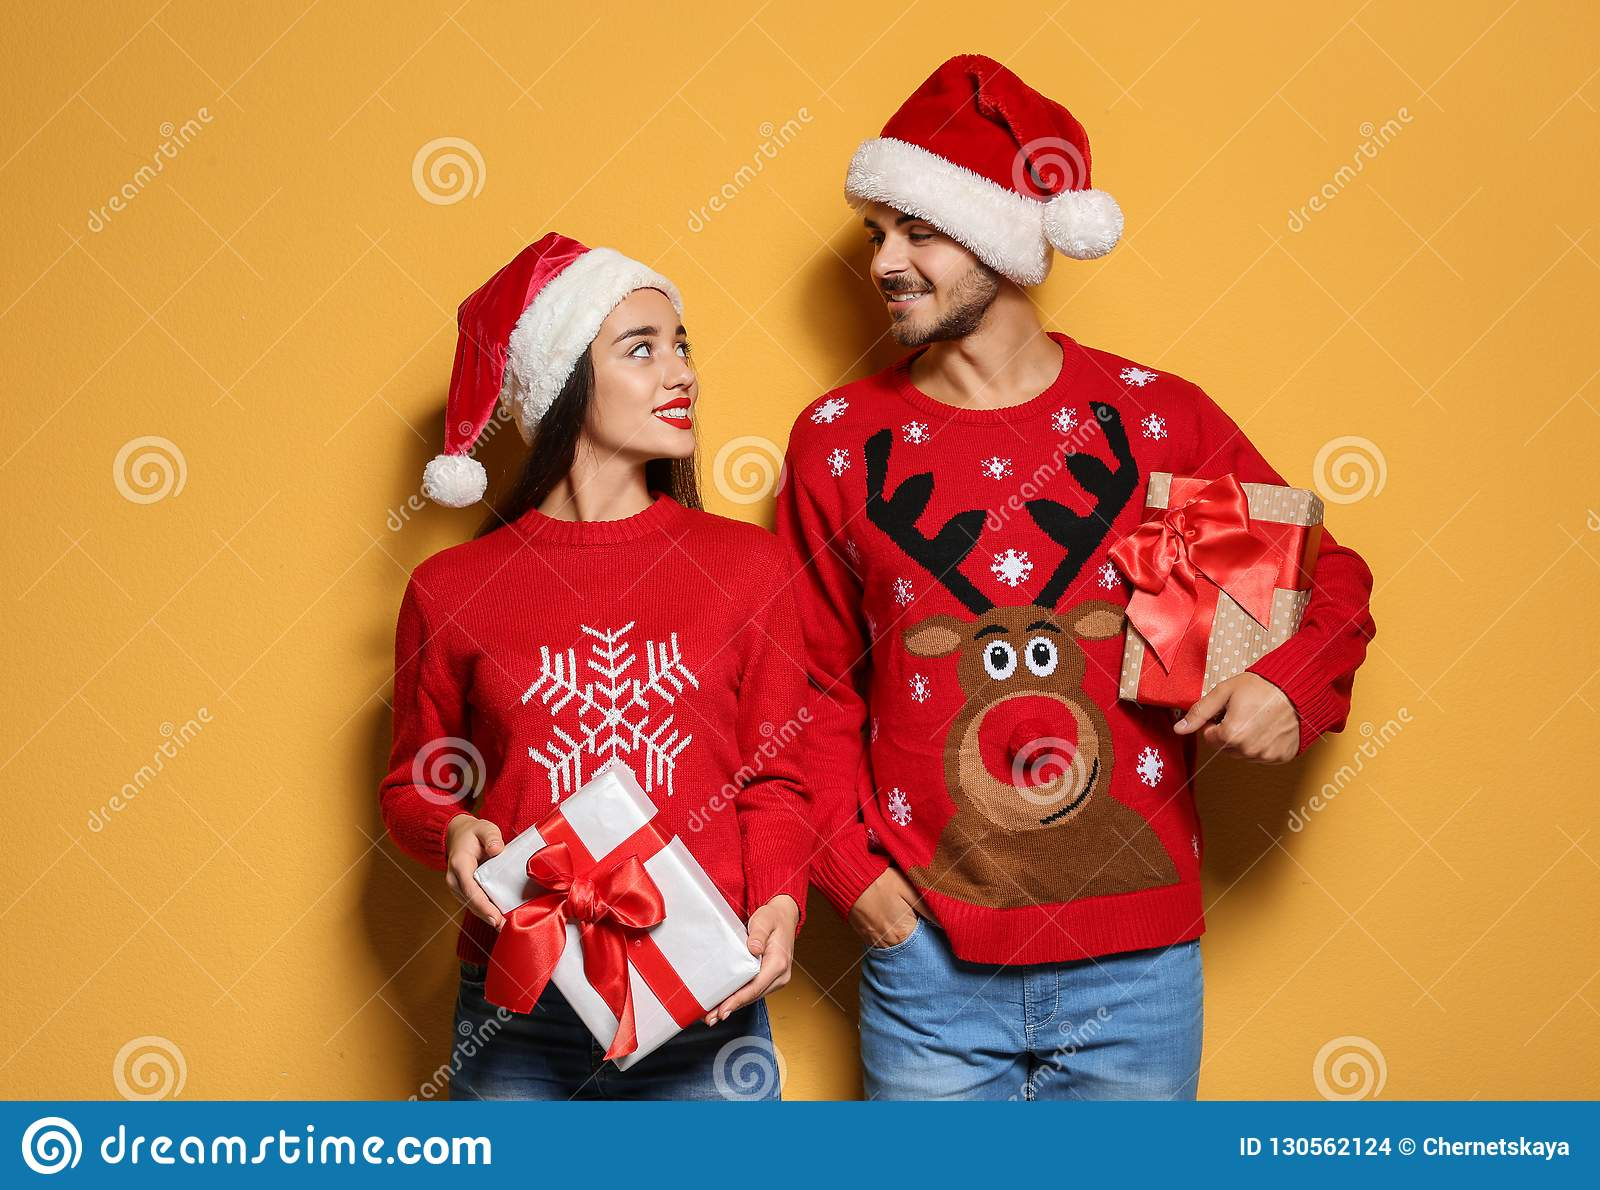 Young couple in Christmas sweaters and hats with gifts